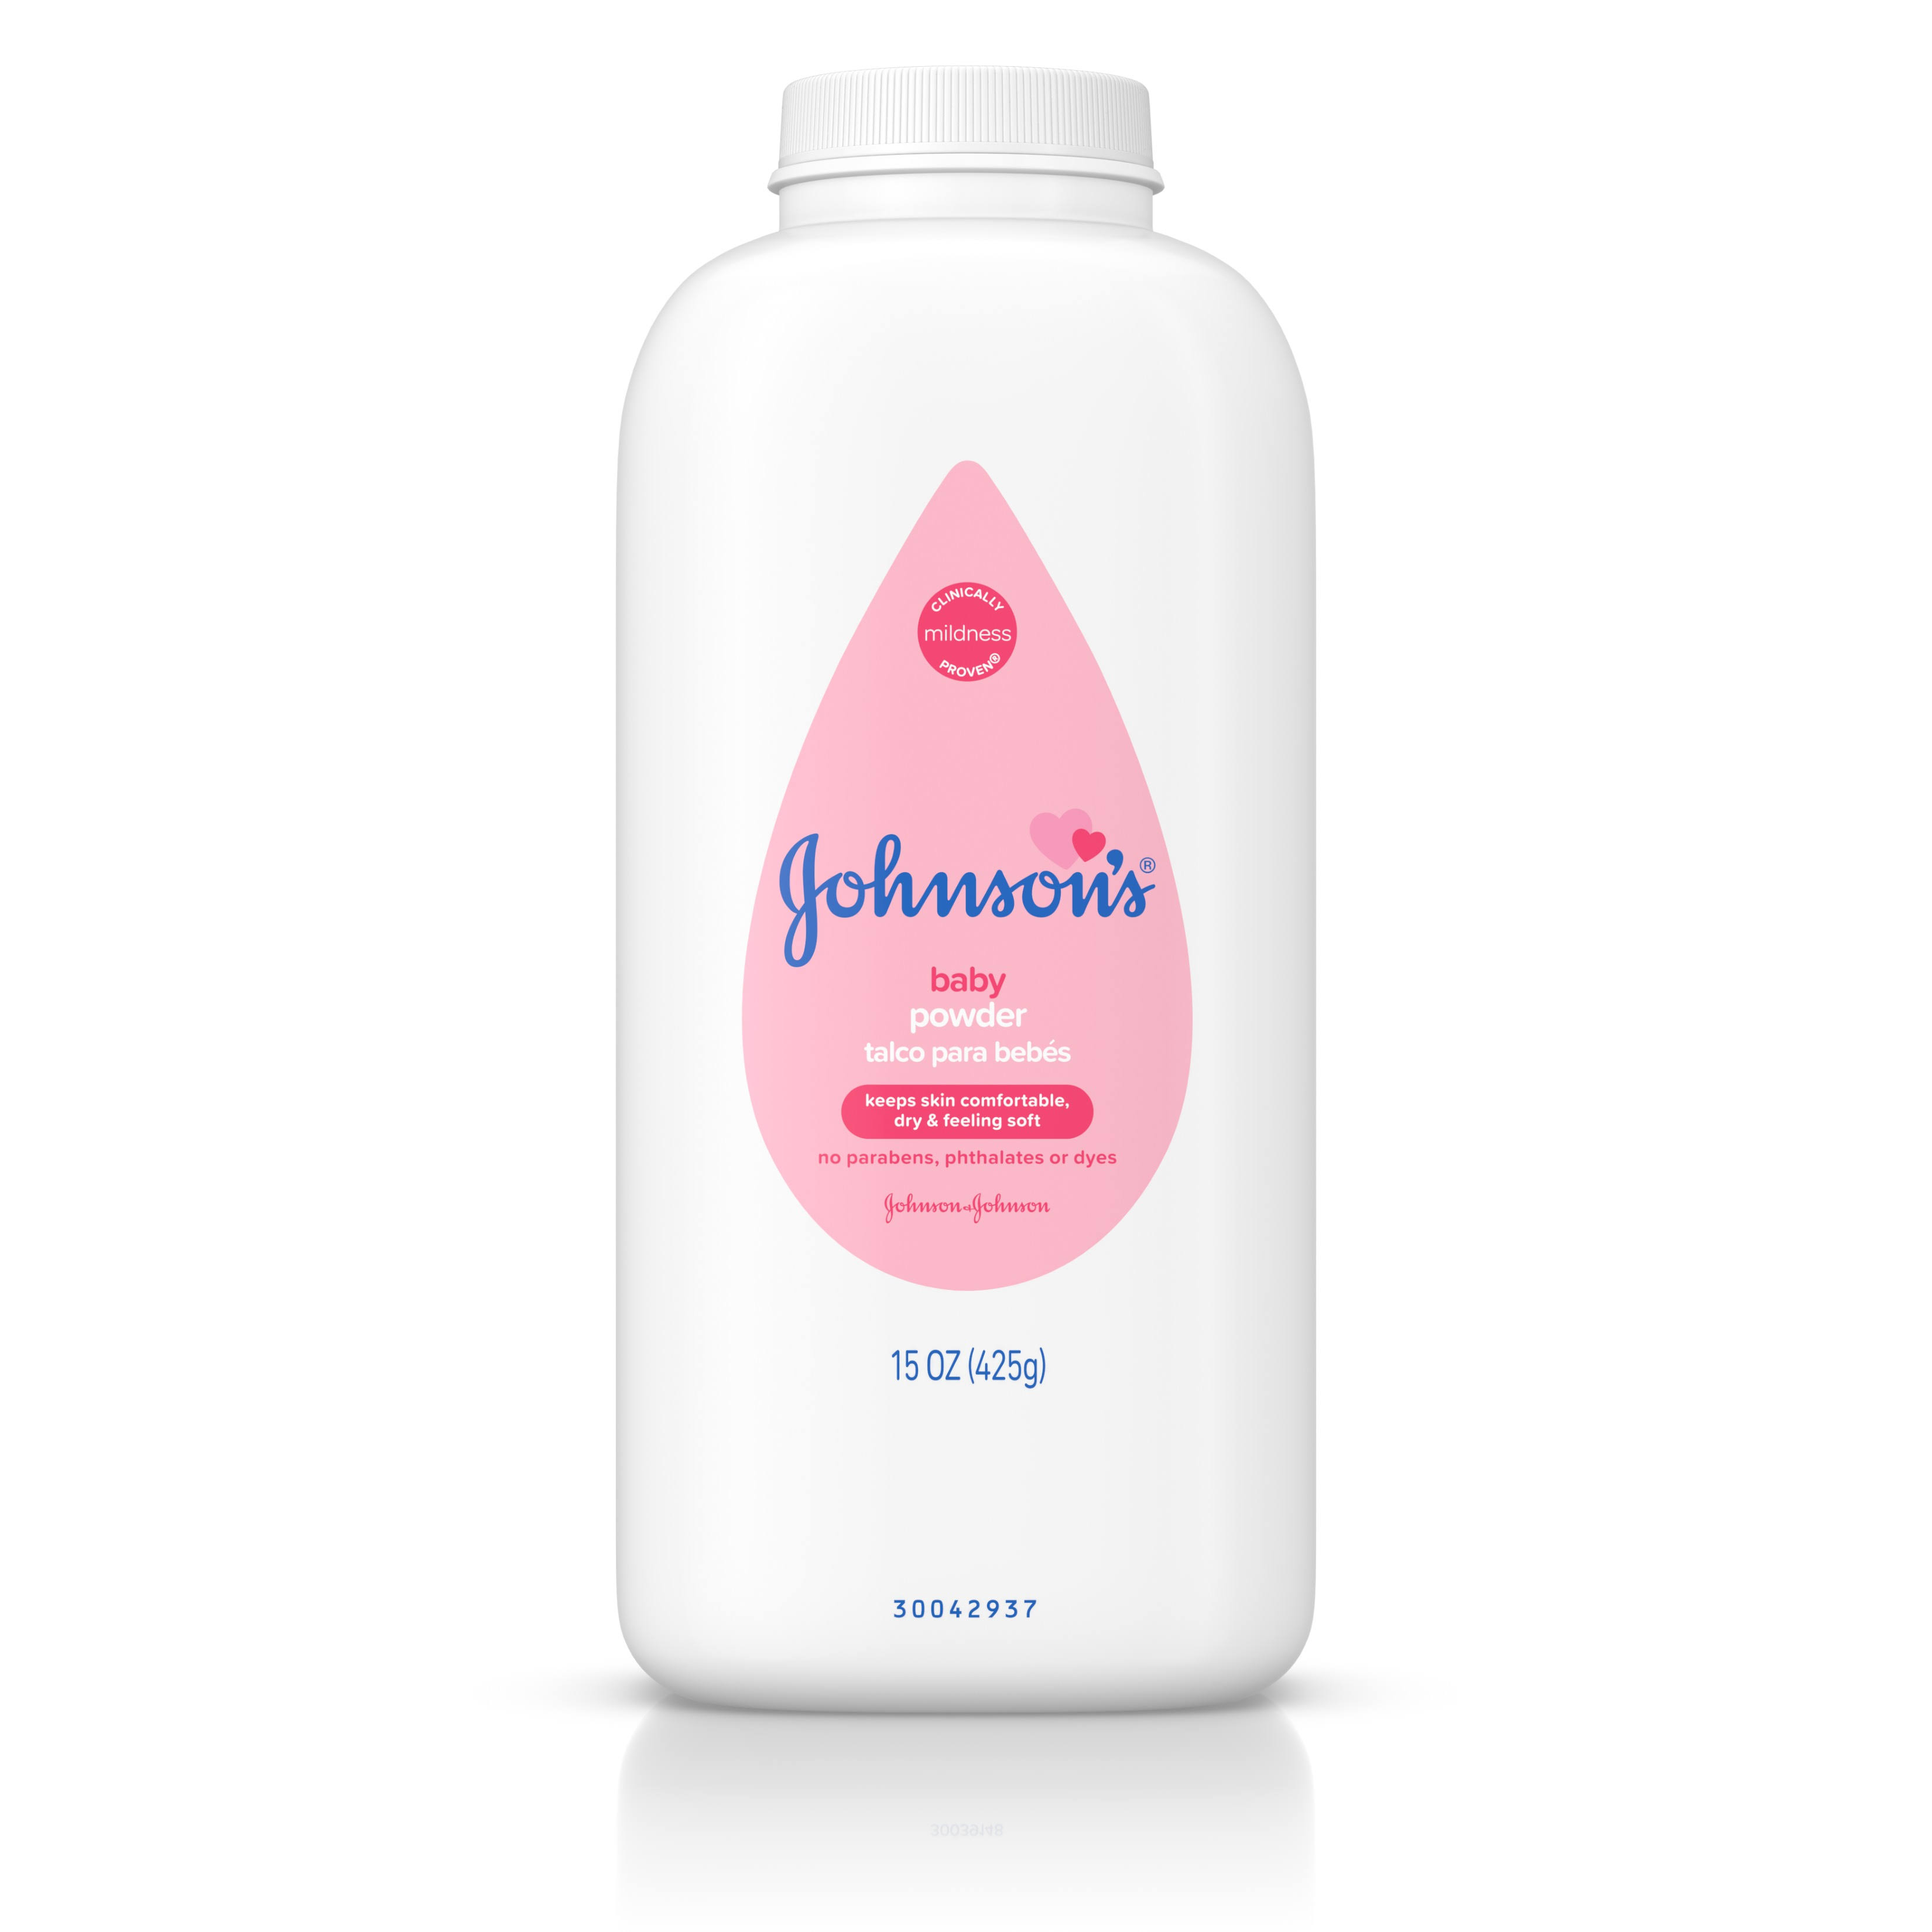 Johnson & Johnson Silky Soft Skin Baby Powder - 15 oz